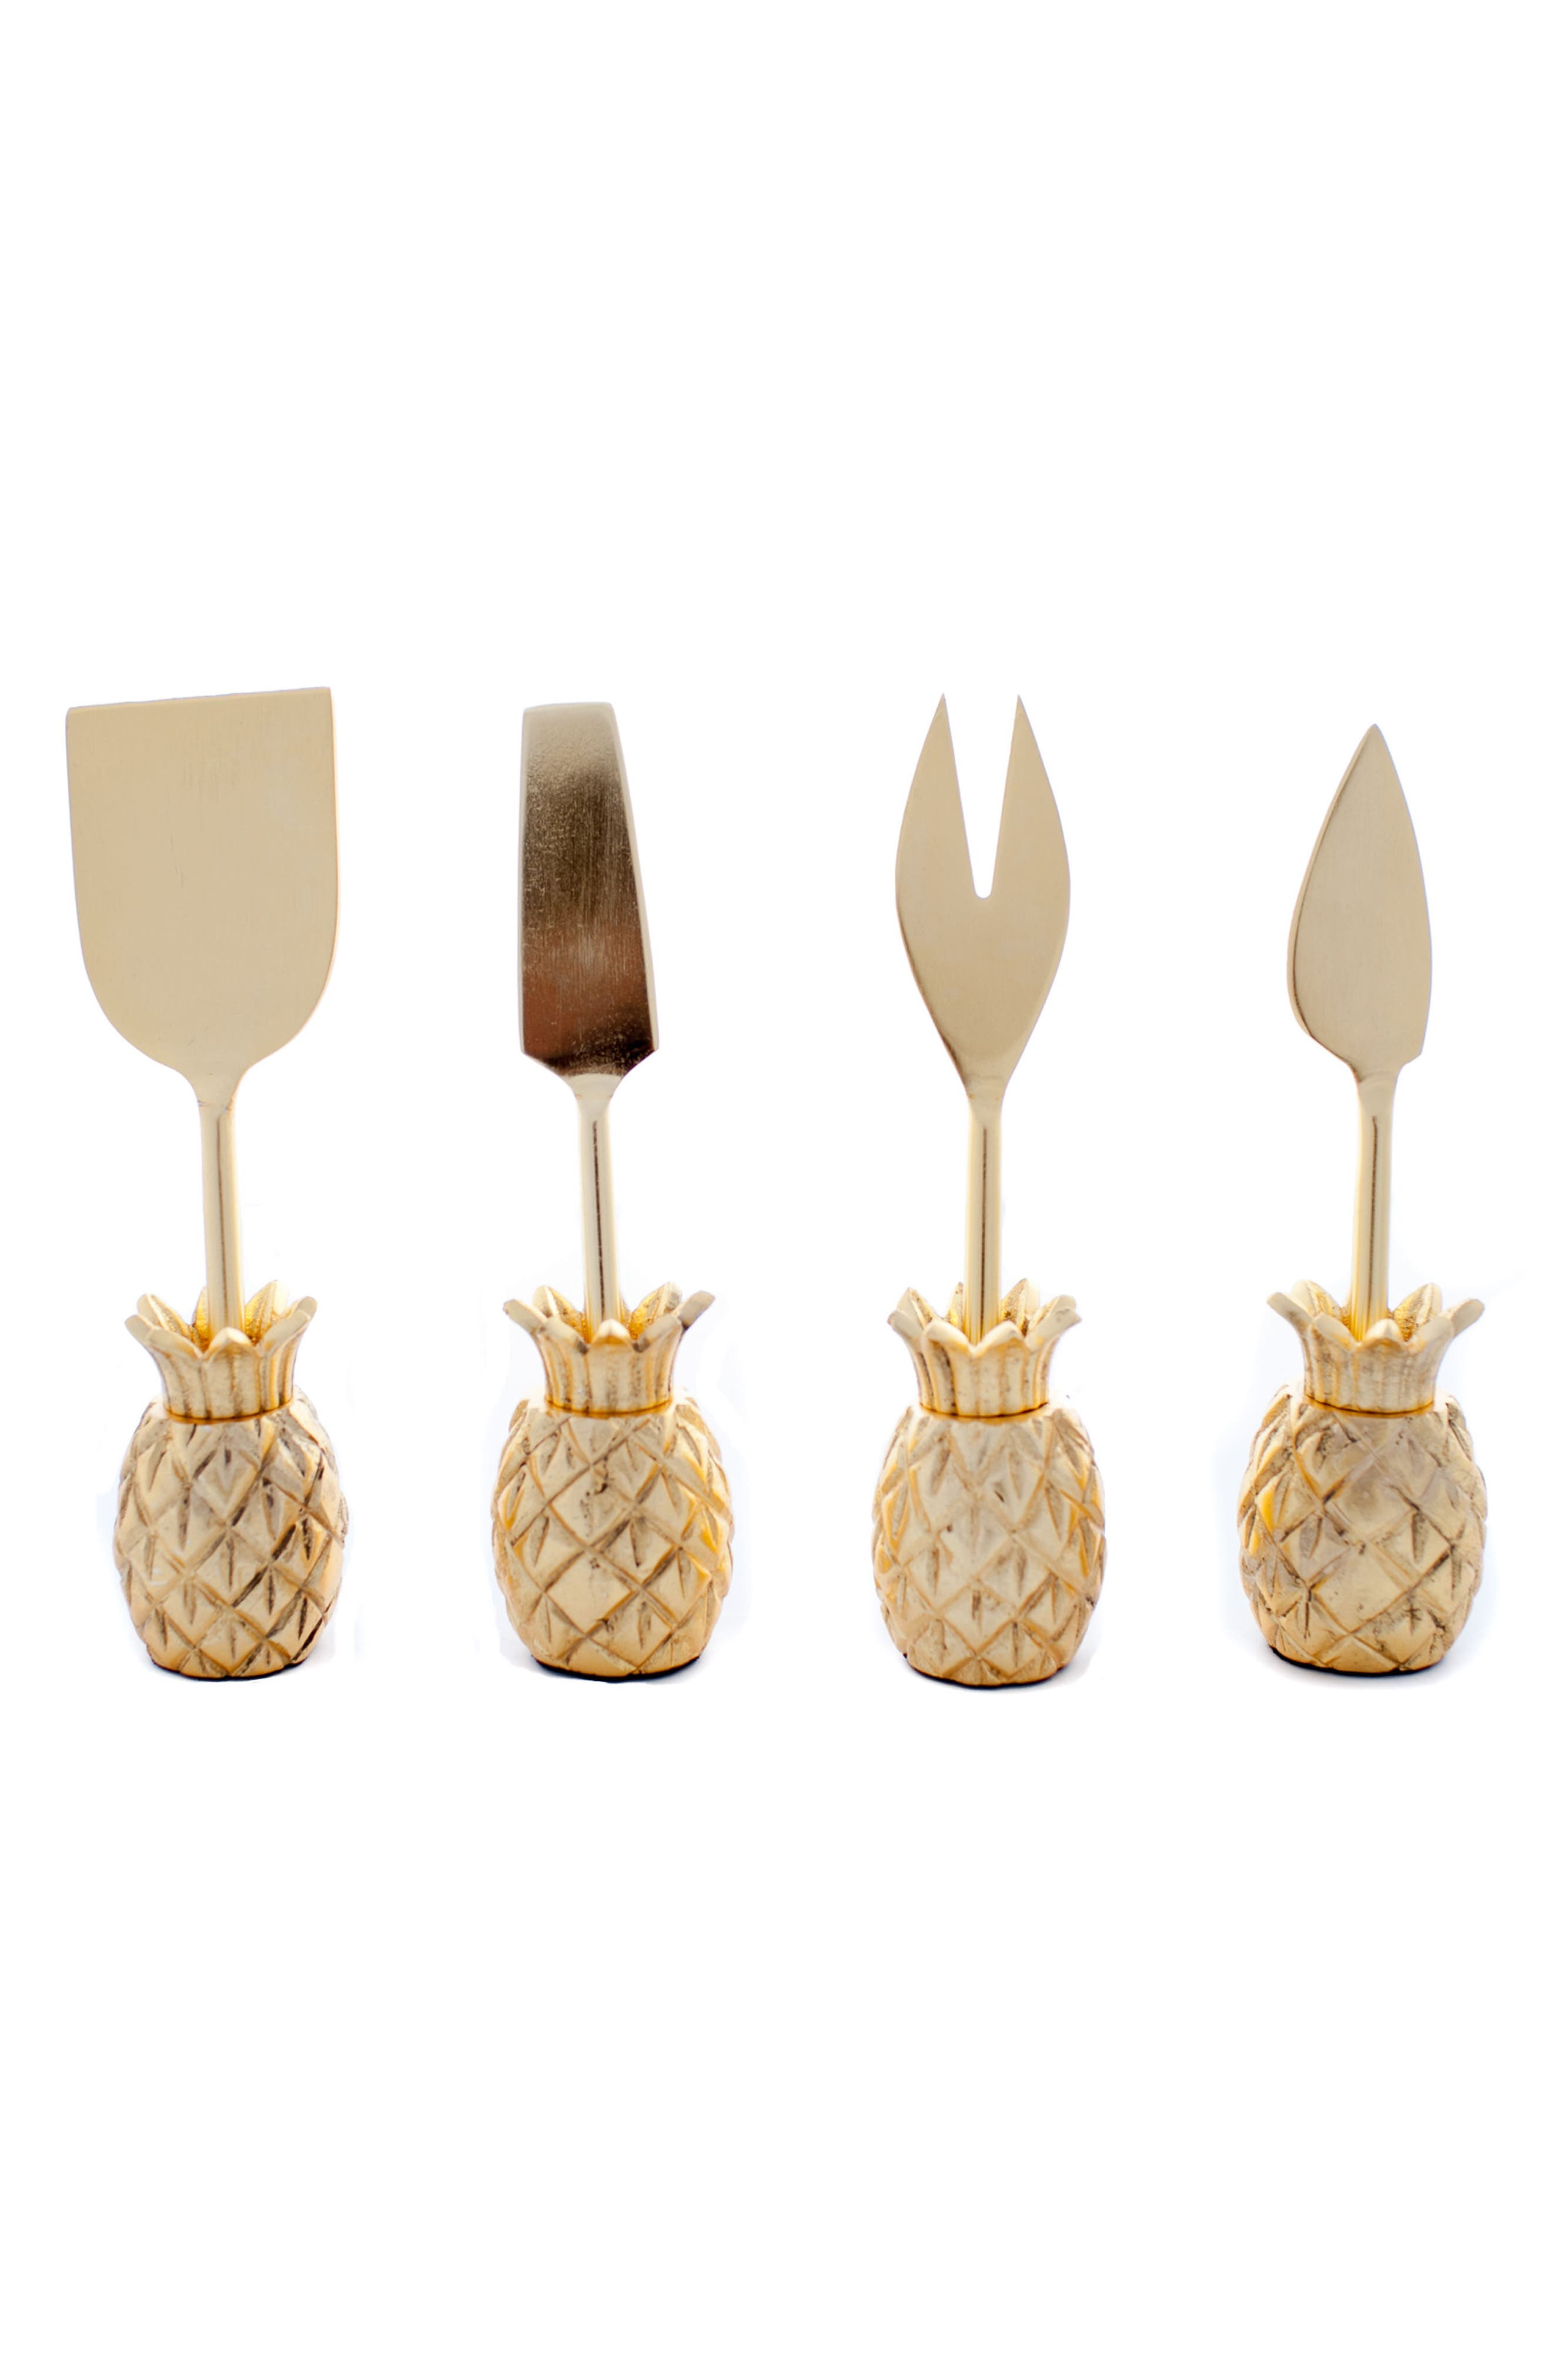 Alternate Image 1 Selected - zestt Luau Set of 4 Cheese Knives